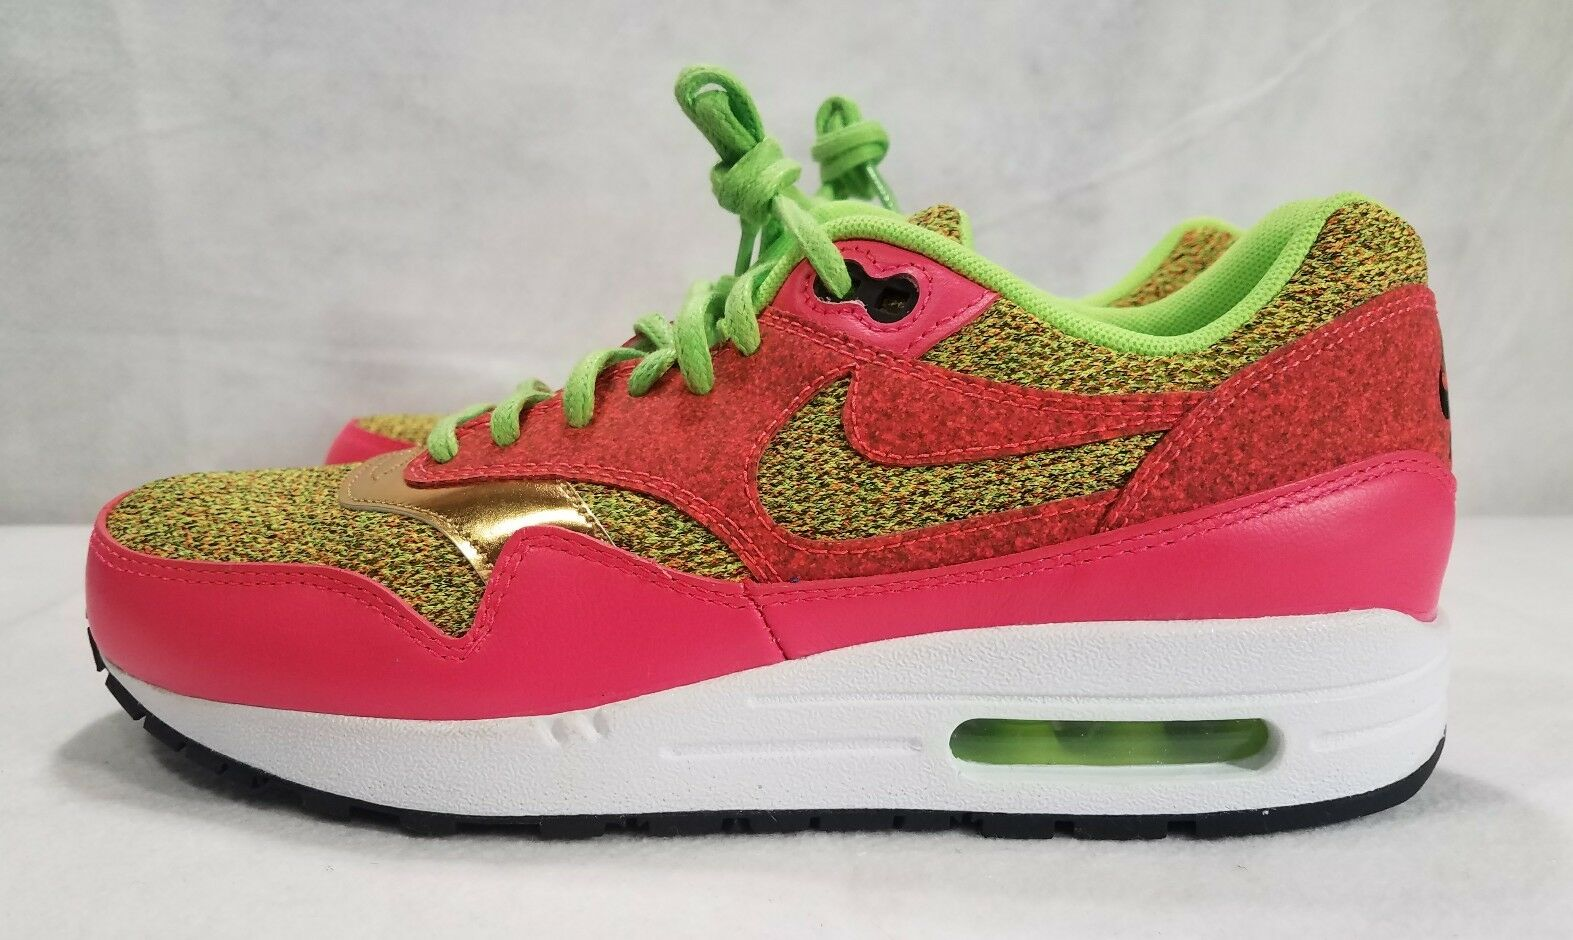 Womens Nike AIR MAX 1 SE Running Shoes -Special Edition -881101 300 -Sz 8.5 -New